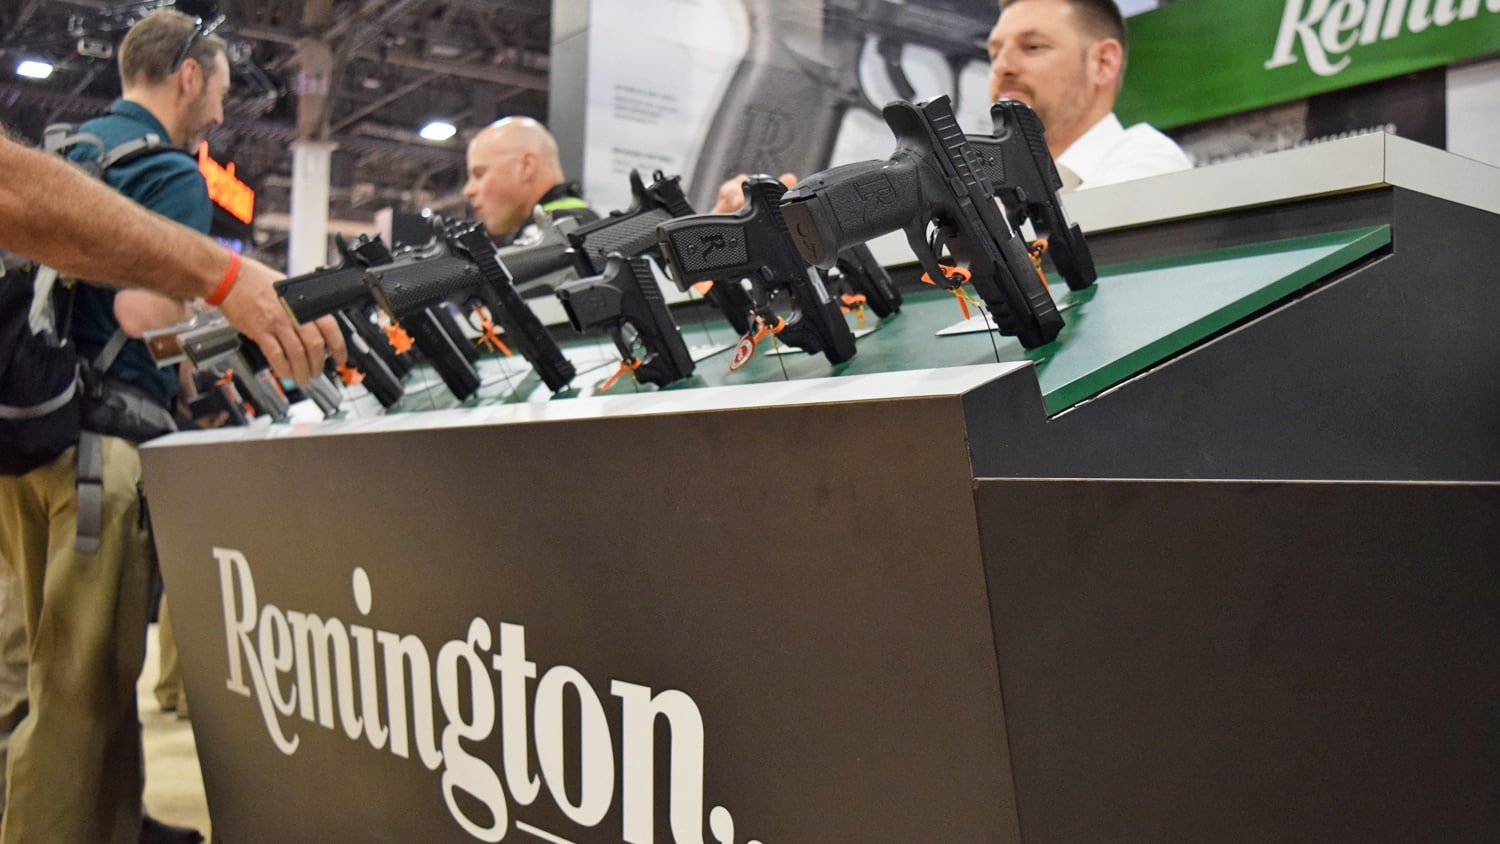 A Remington representative helping patrons during the 2018 SHOT Show in Las Vegas. (Photo: Daniel Terrill/Guns.com)